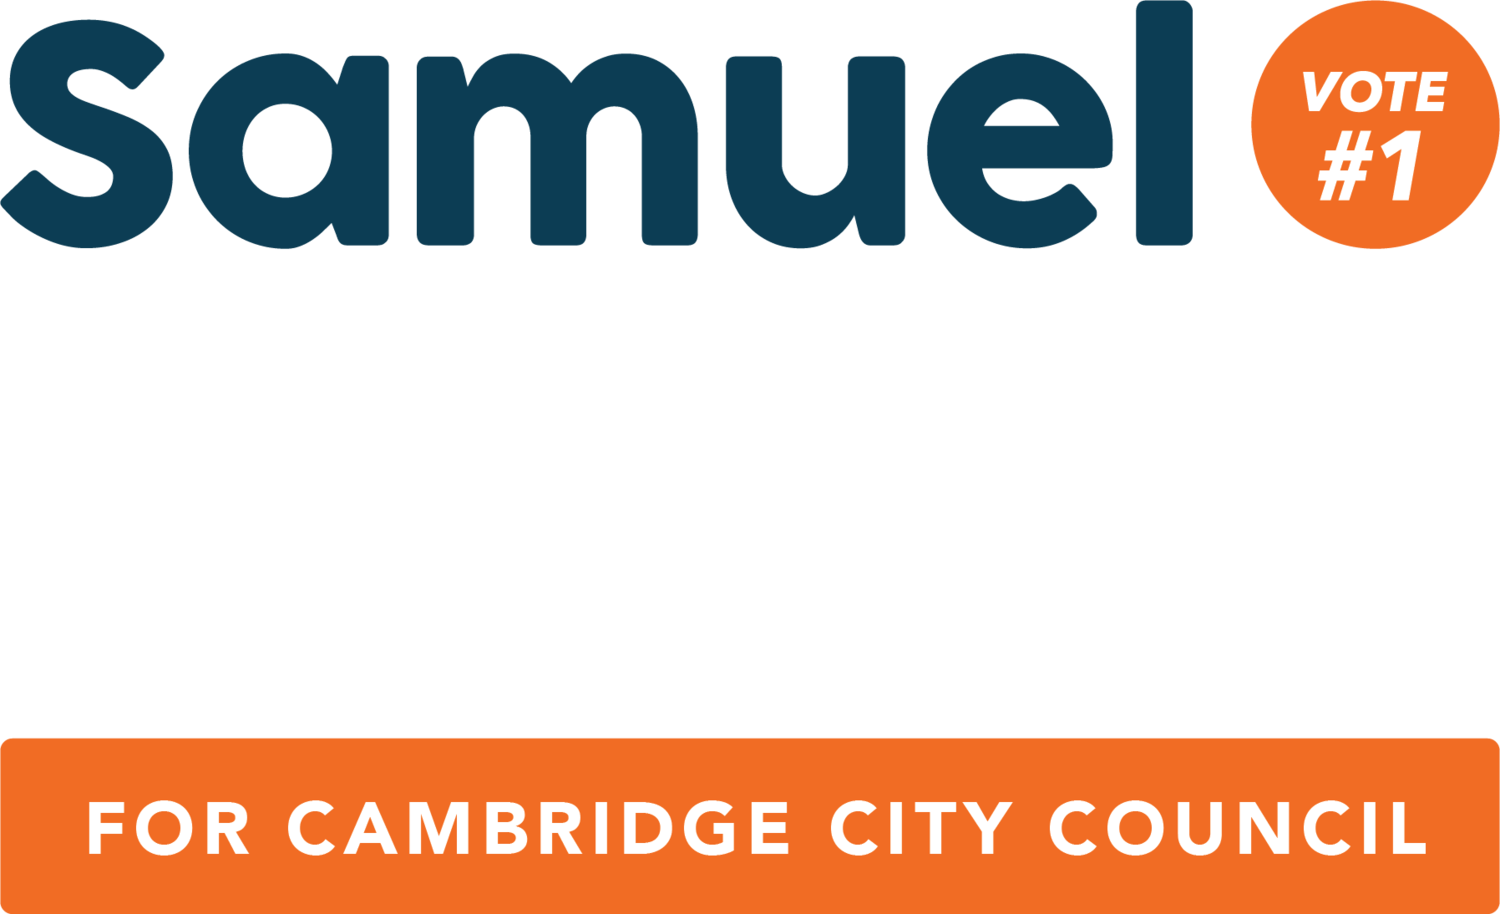 Samuel Gebru for Cambridge City Council